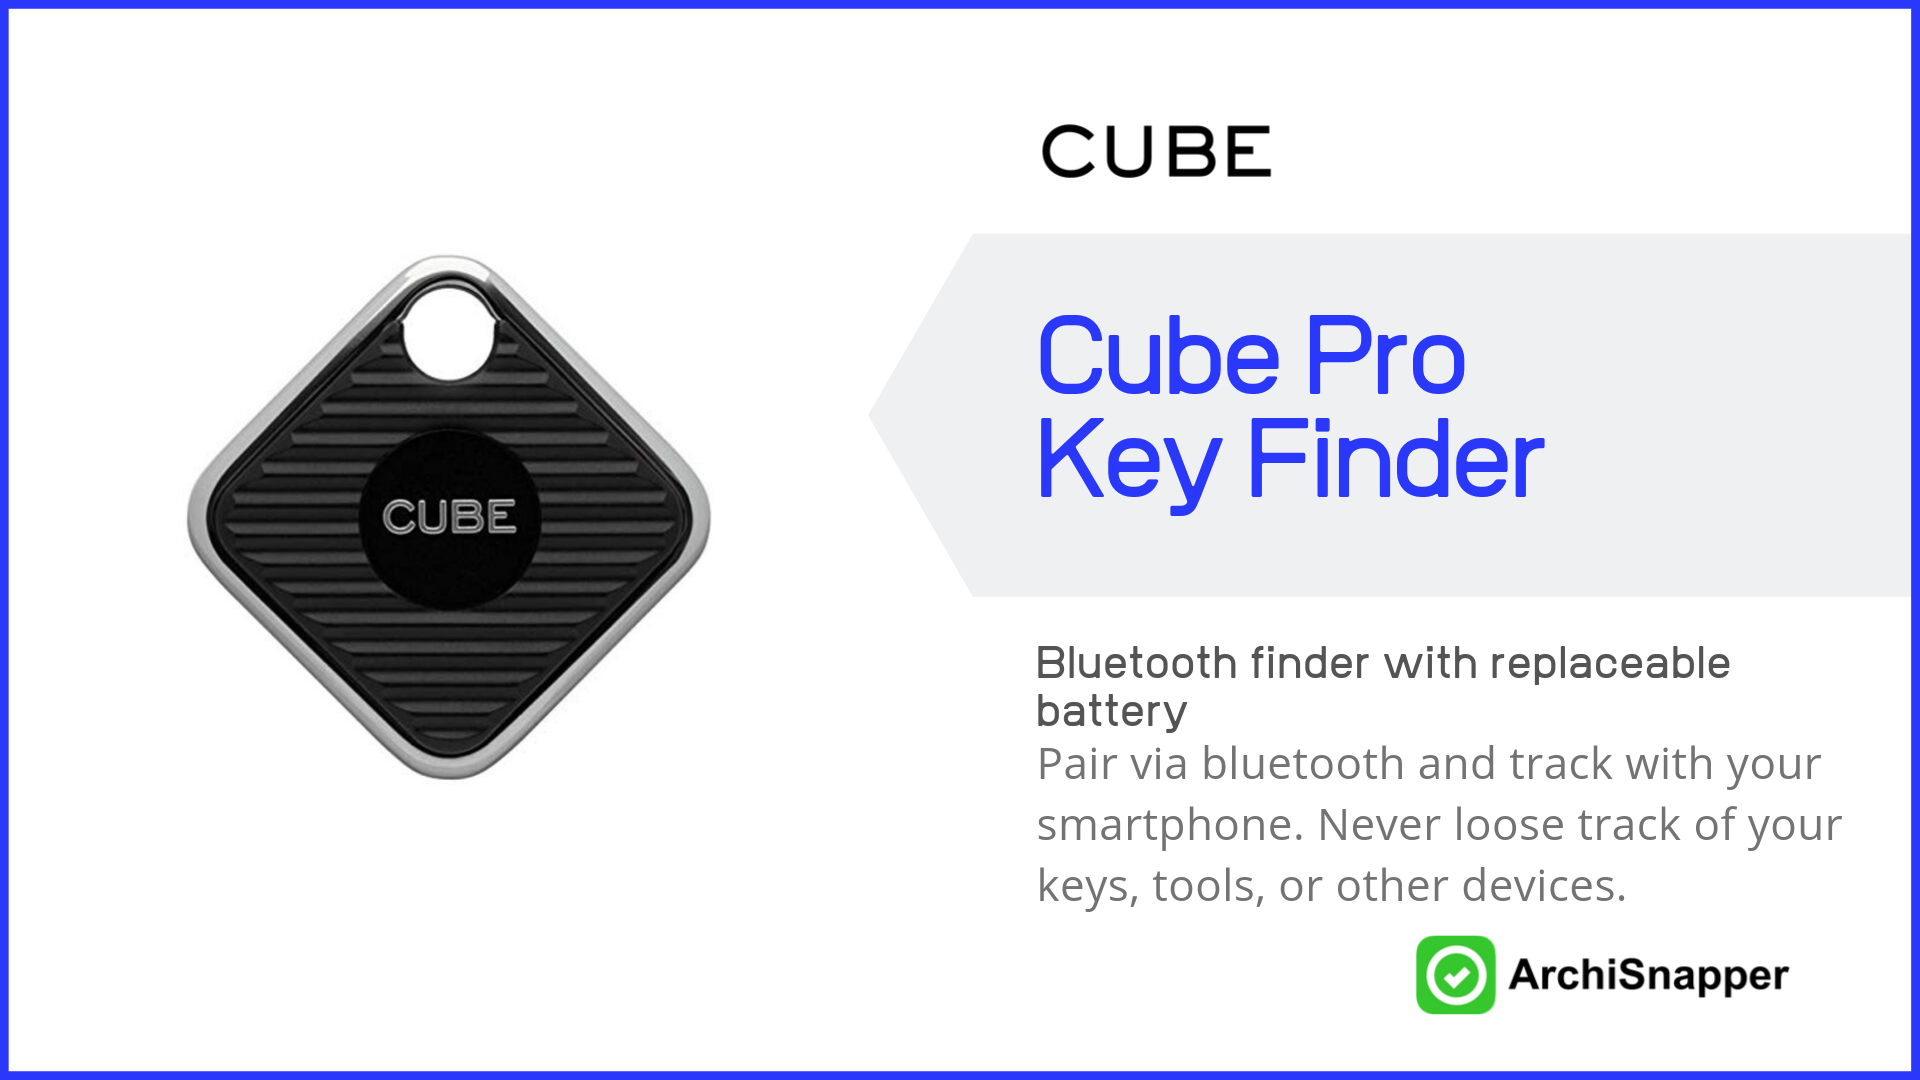 Cube Pro Key Finder | Top Tech for Architects Presented by Archisnapper.